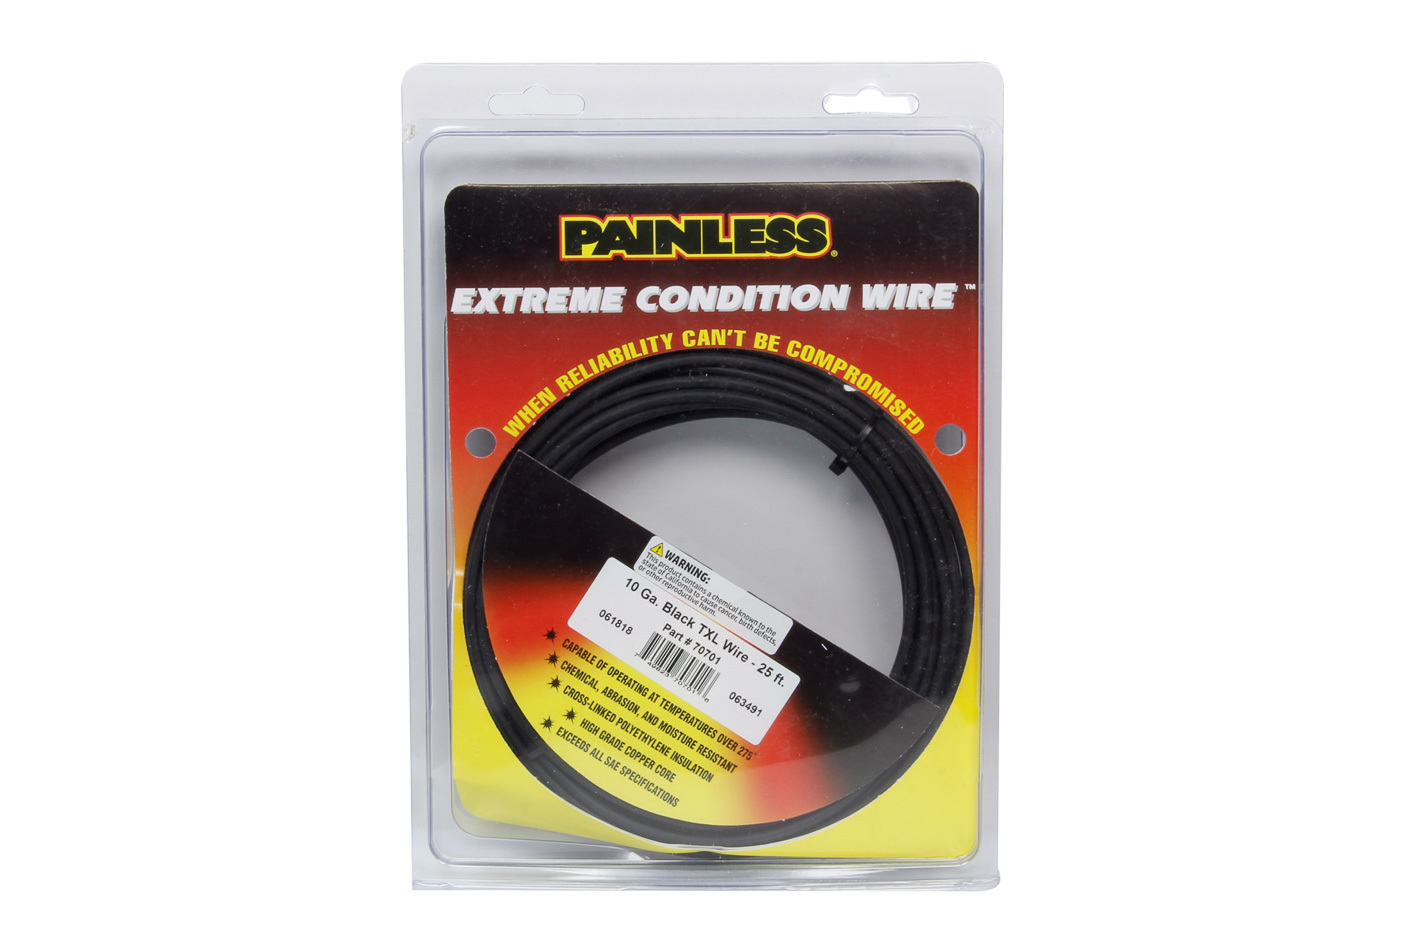 Painless Wiring 70701 Wire, TXL, 10 Gauge, 25 ft Roll, Plastic Insulation, Copper, Black, Each